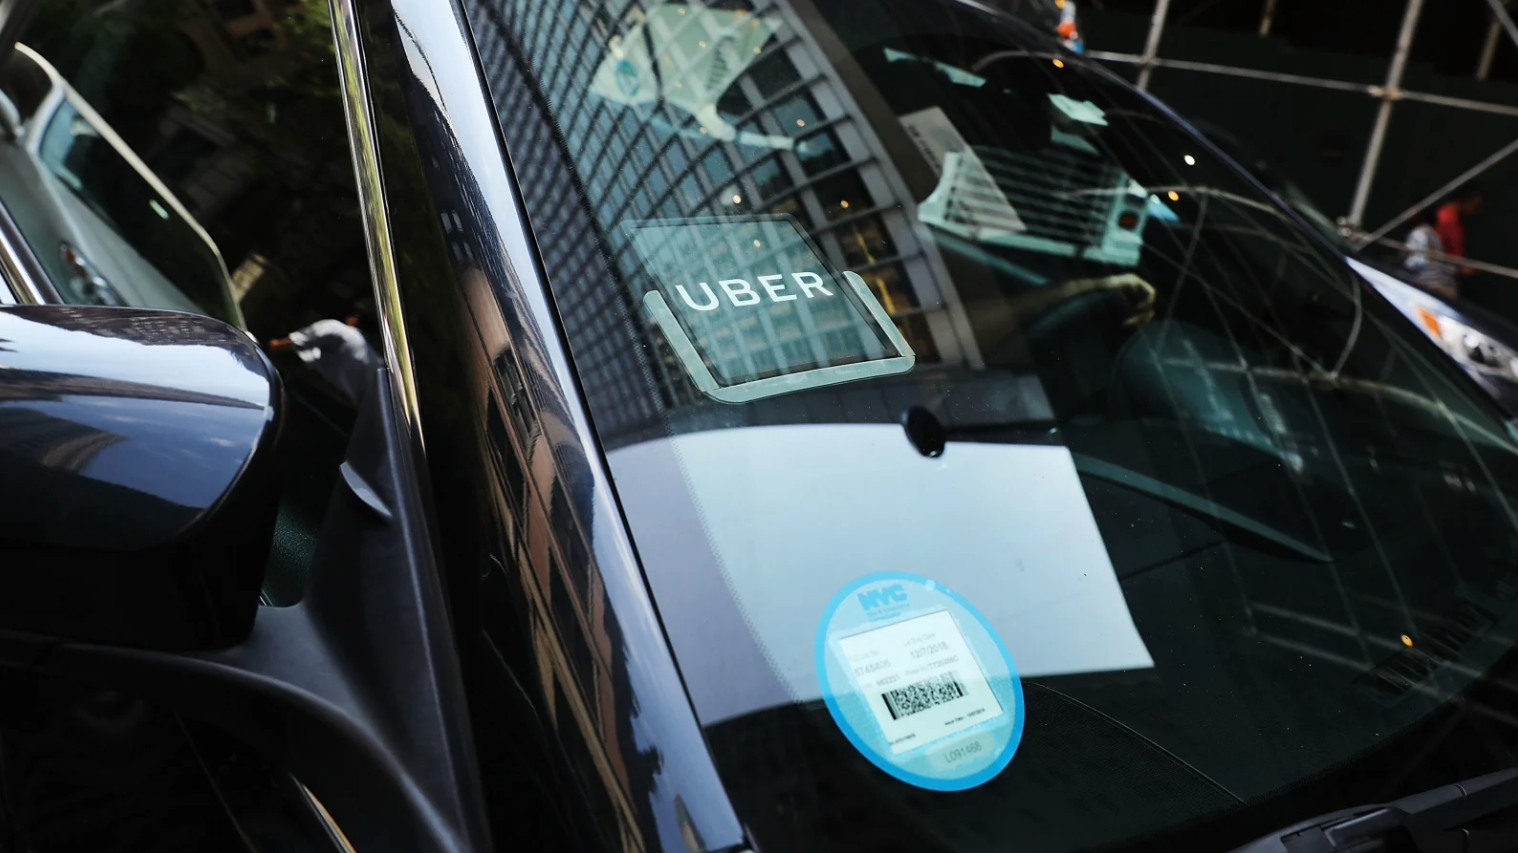 Uber Plans To Record Audio Of Rides In The U.S.